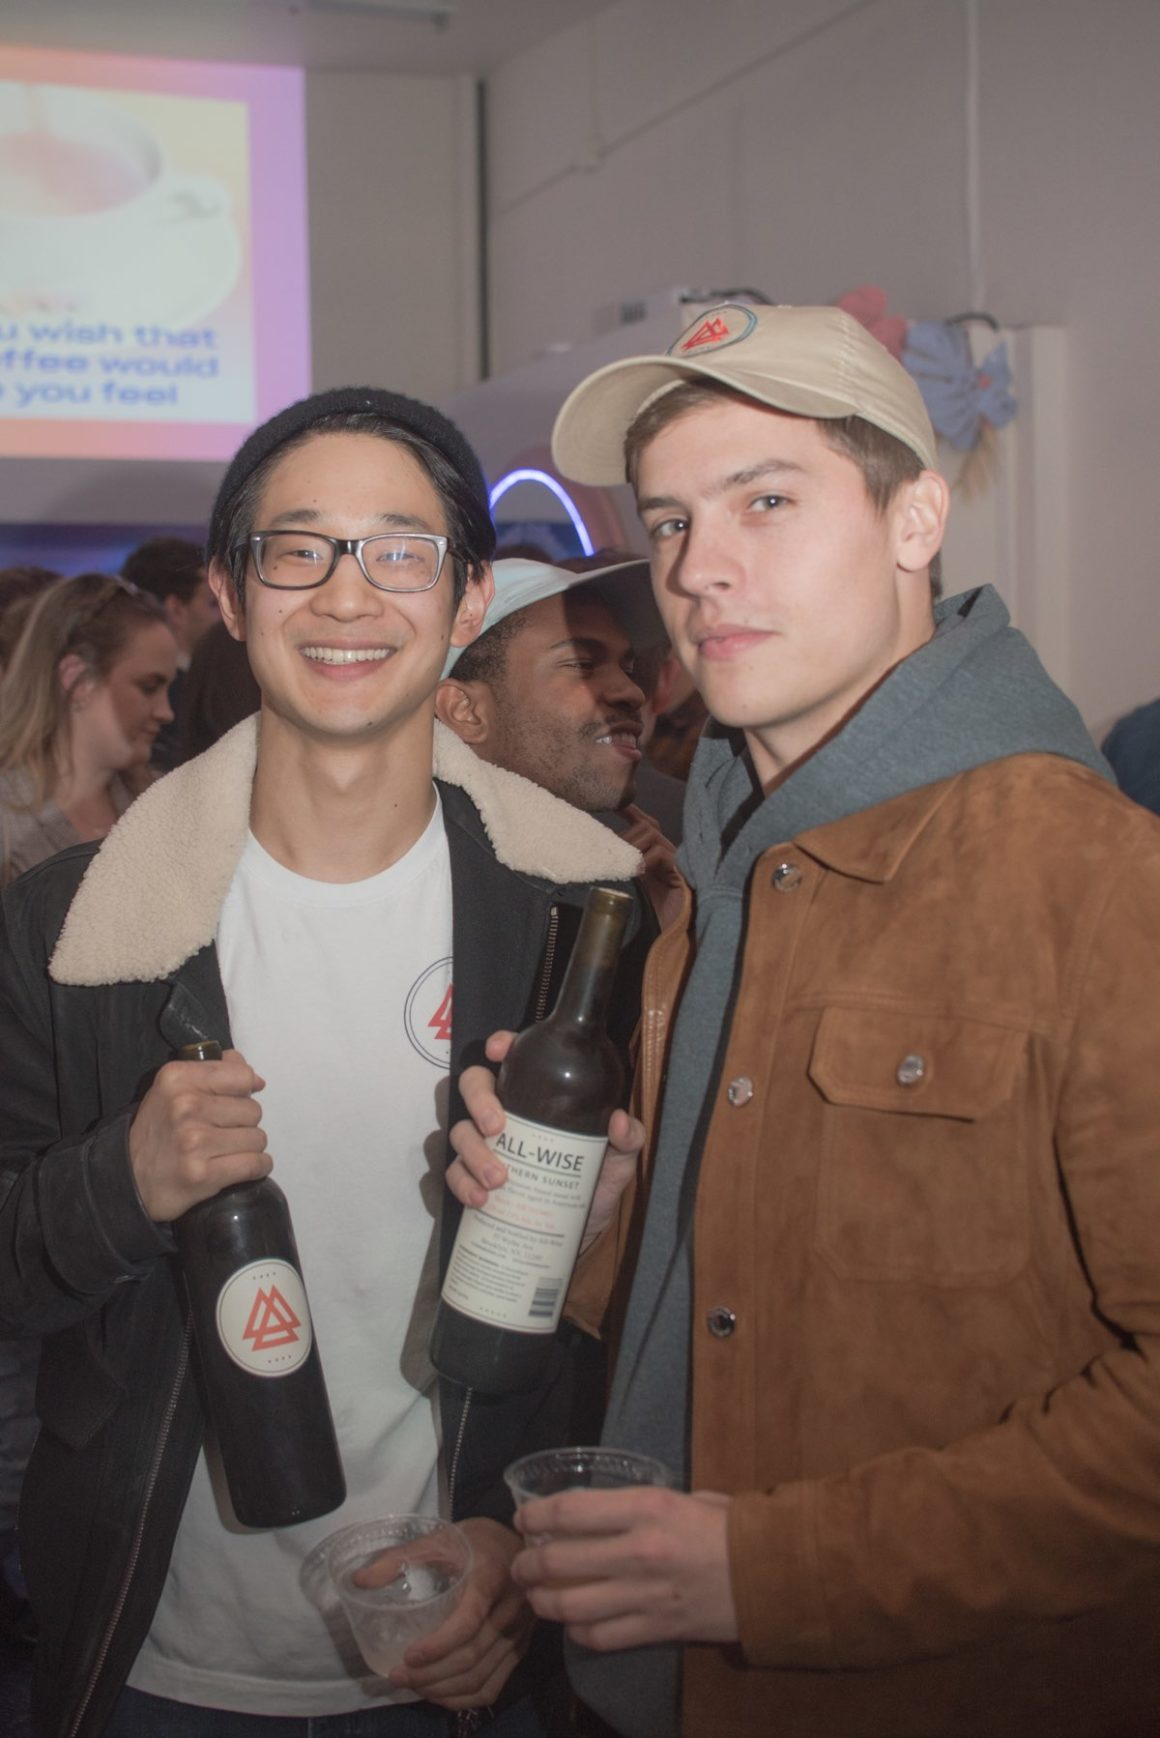 Matt Kwan, Operations Manager of All-Wise Meadery, Dylan Sprouse, Co-Founder of All-Wise Meadery